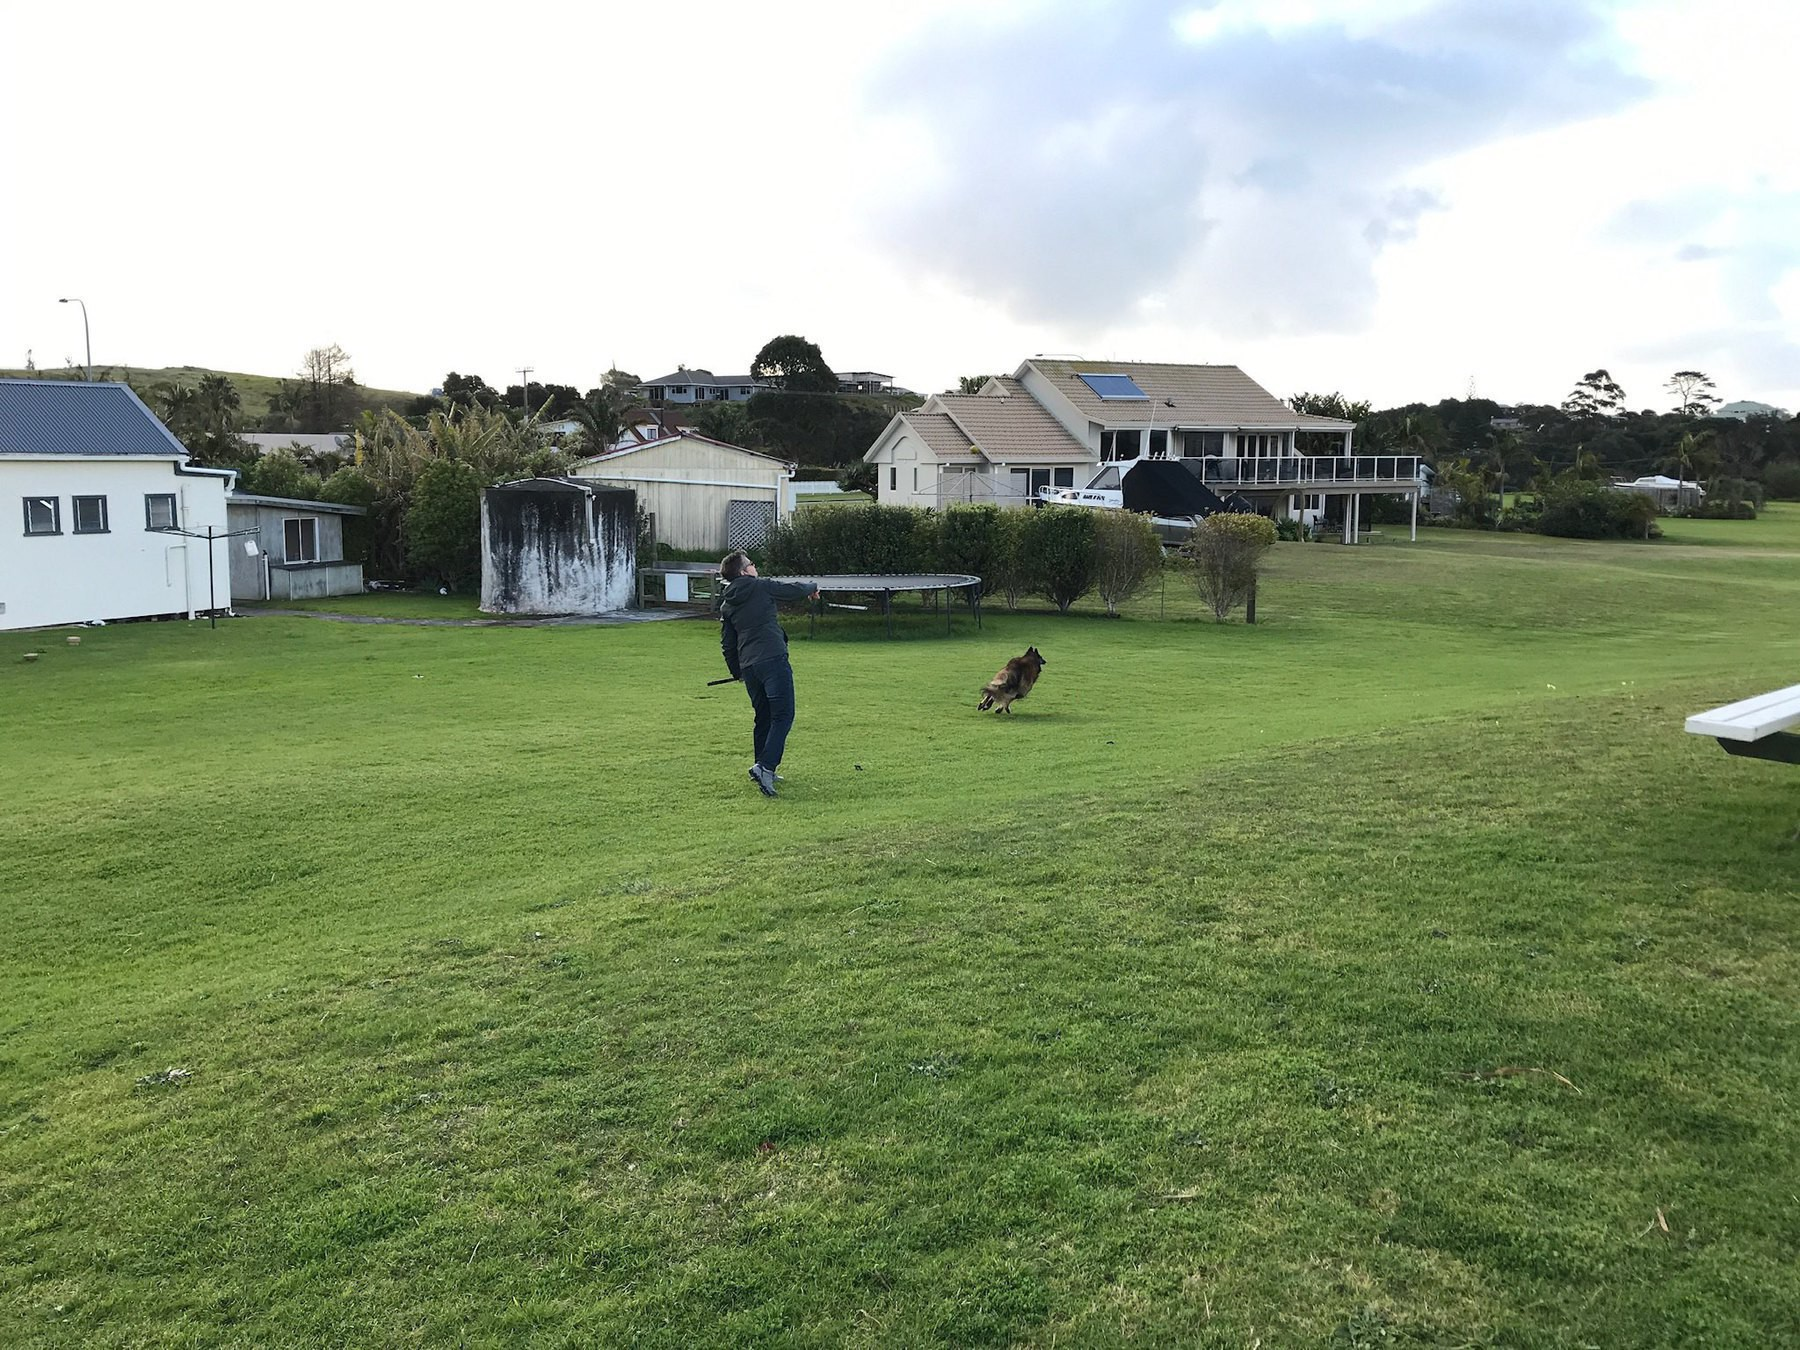 My friend throws the ball for her dog.